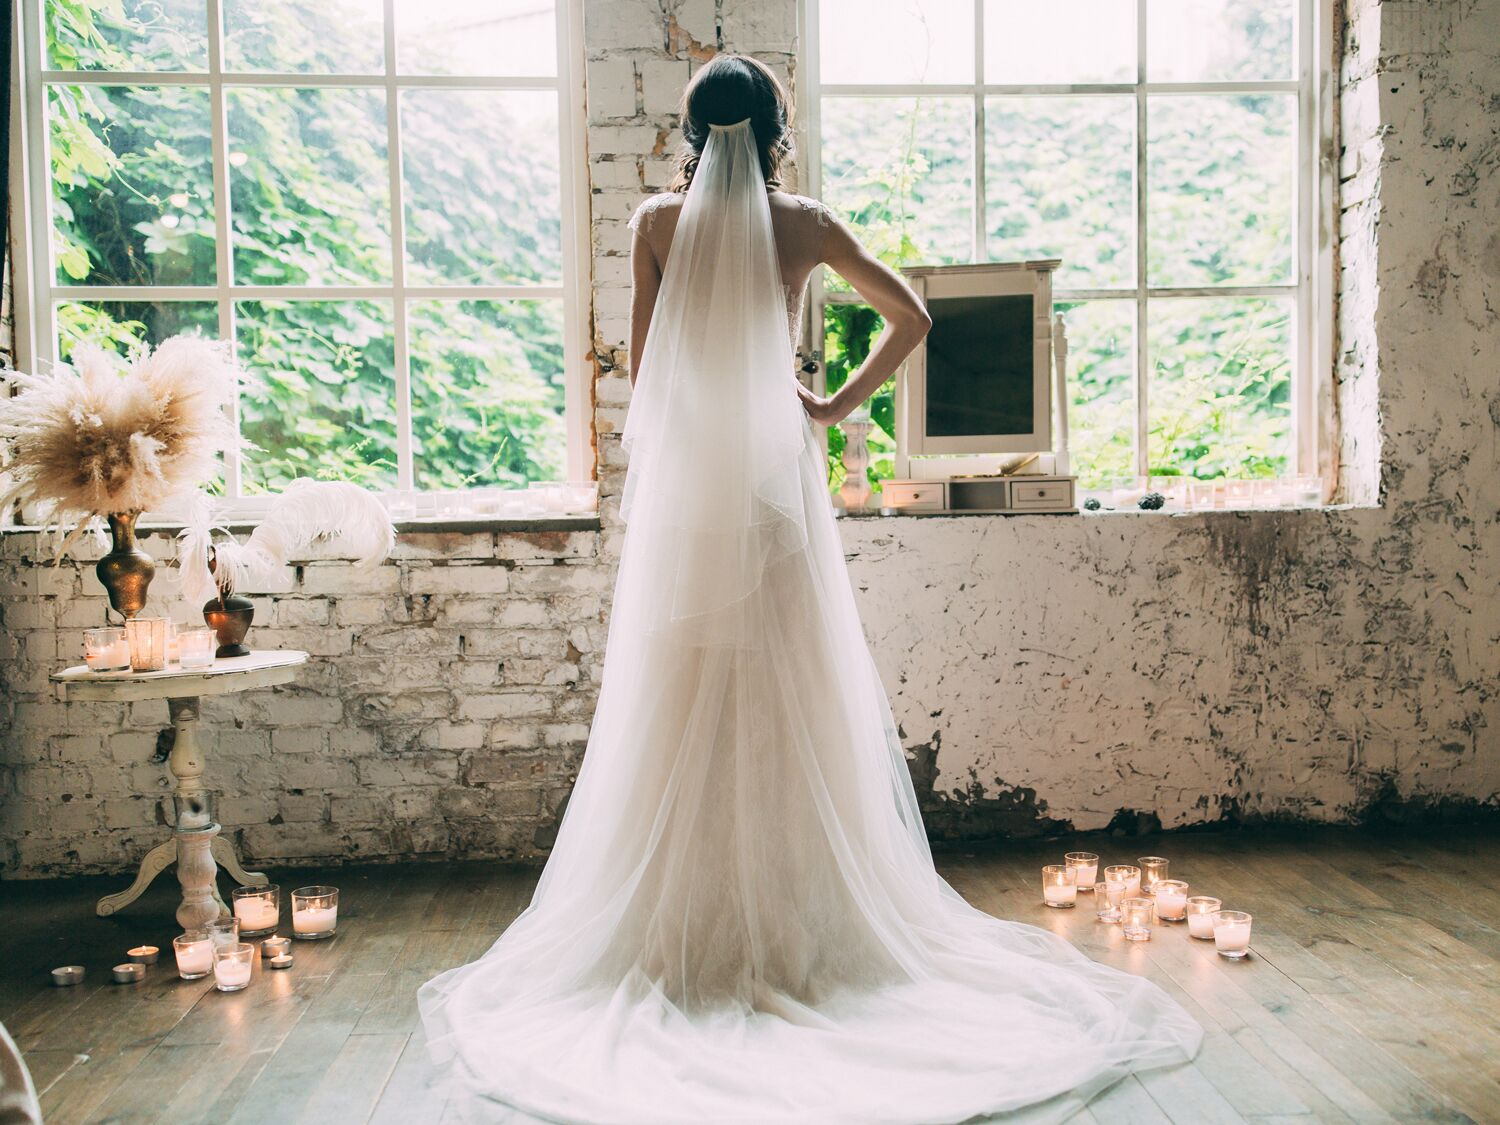 Don't Miss The Veil: Incredible American Wedding Traditions to follow